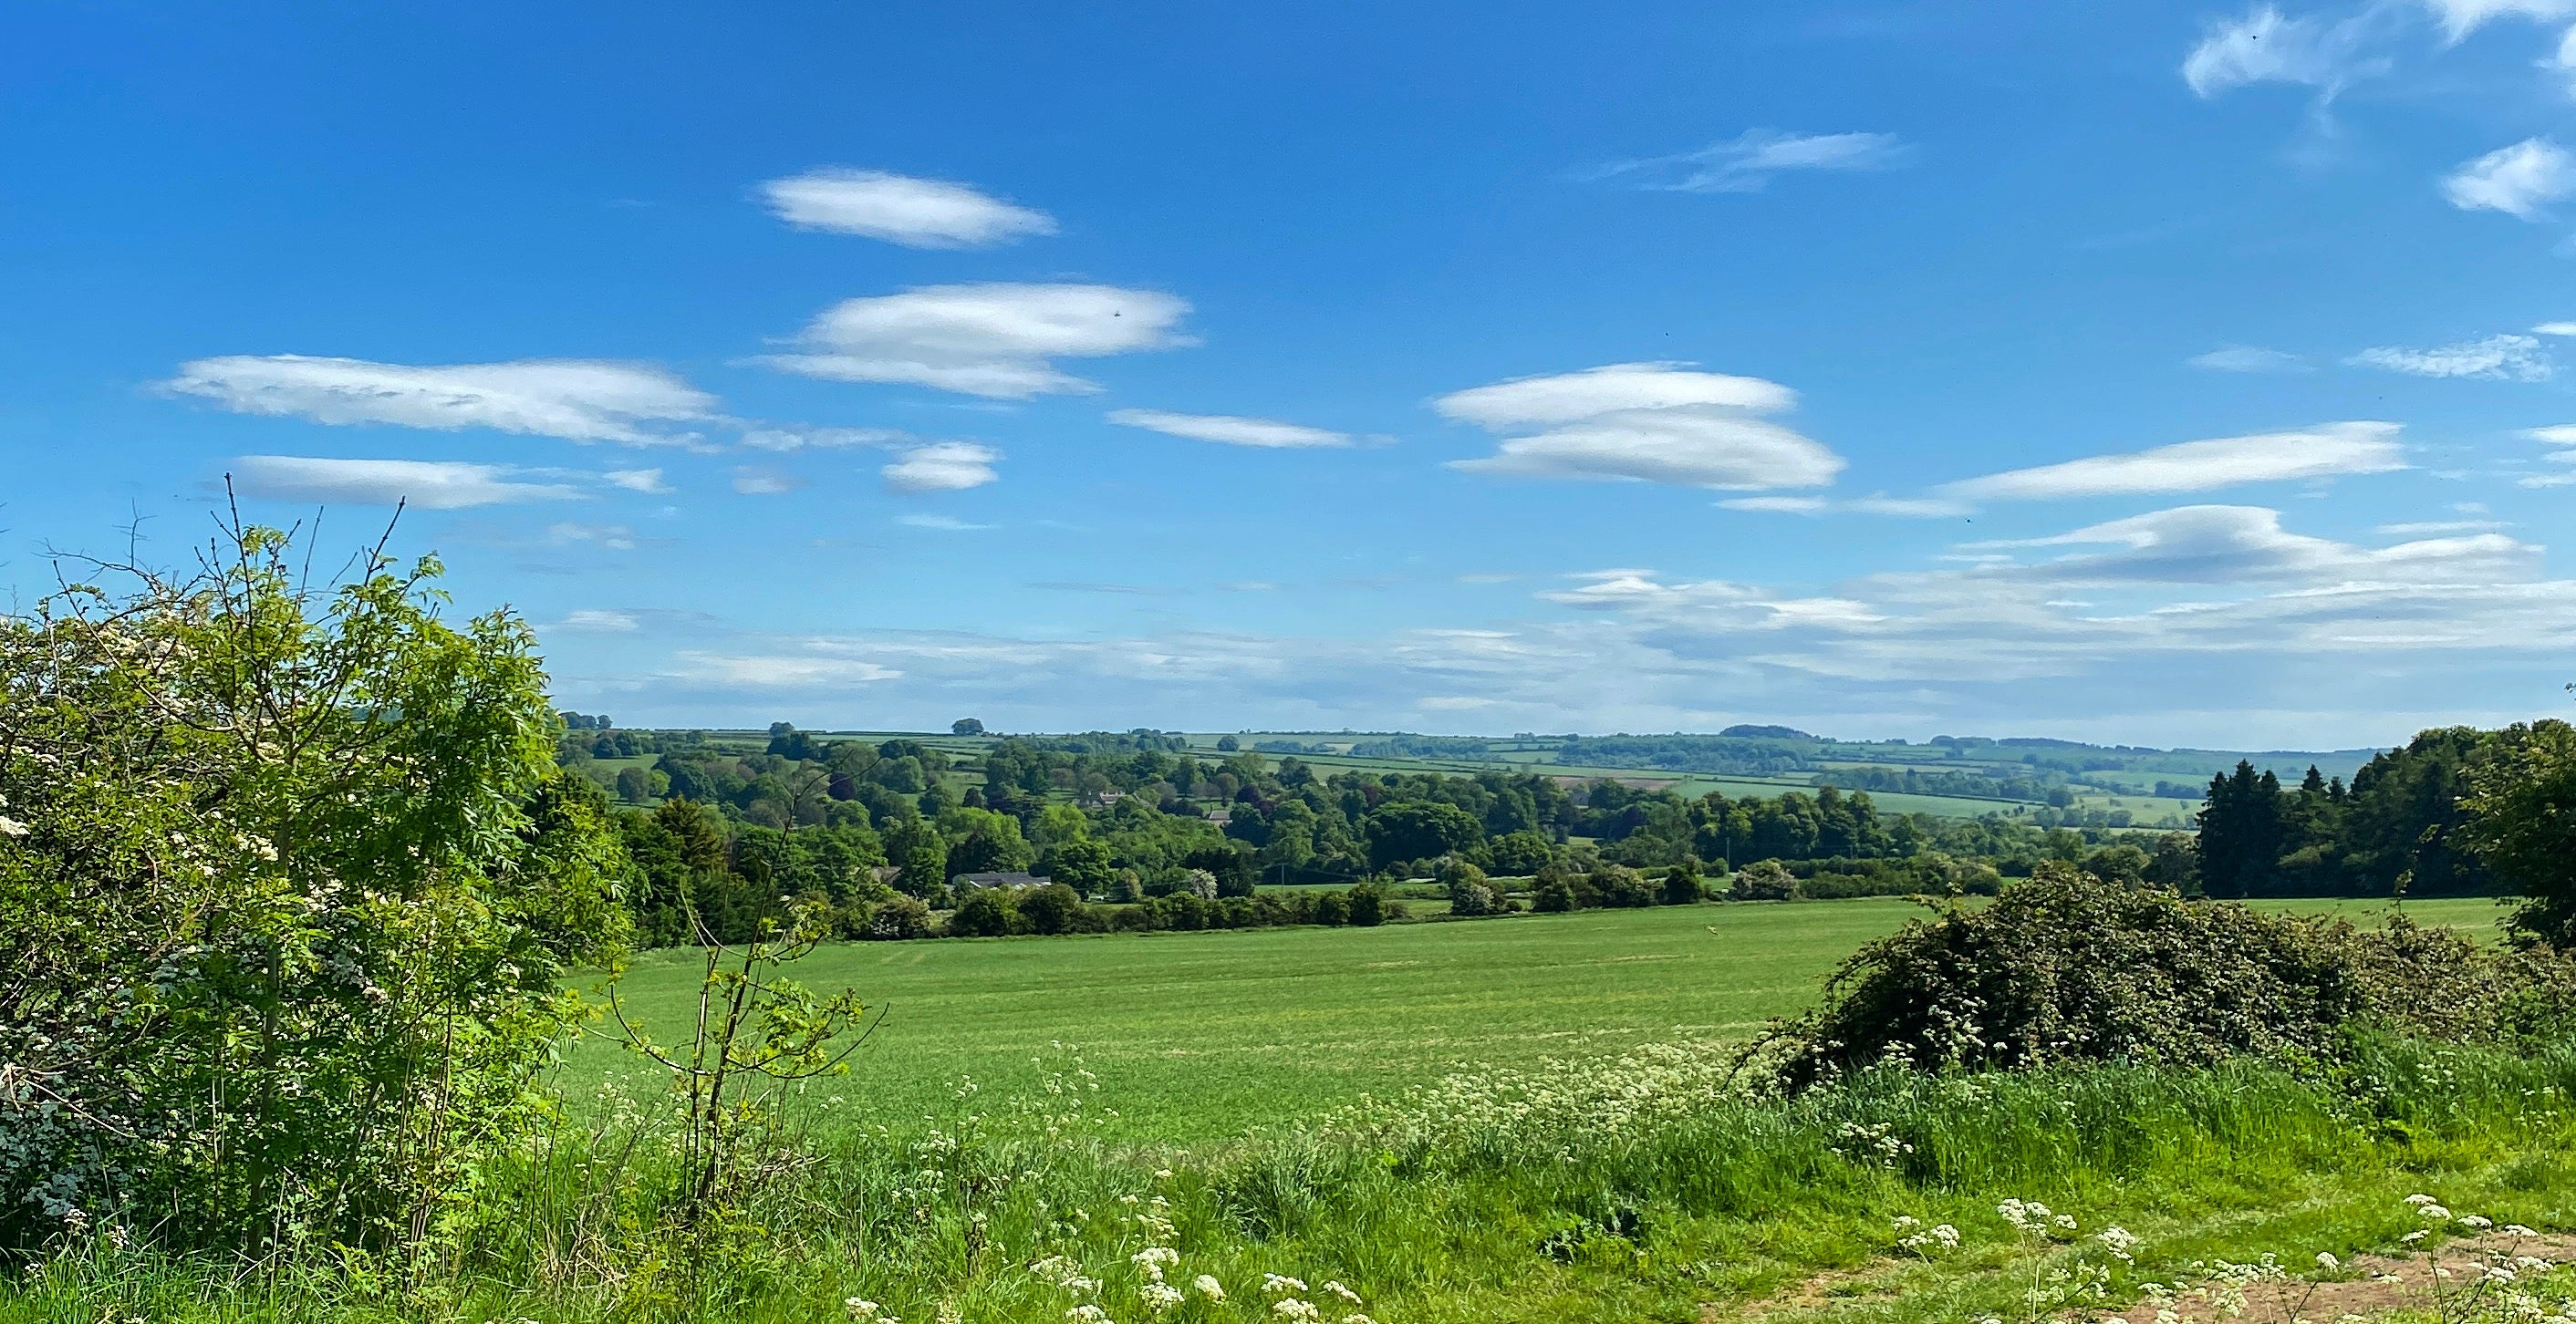 cotswolds photograph landscape Teddy McDonald contemporary fine art